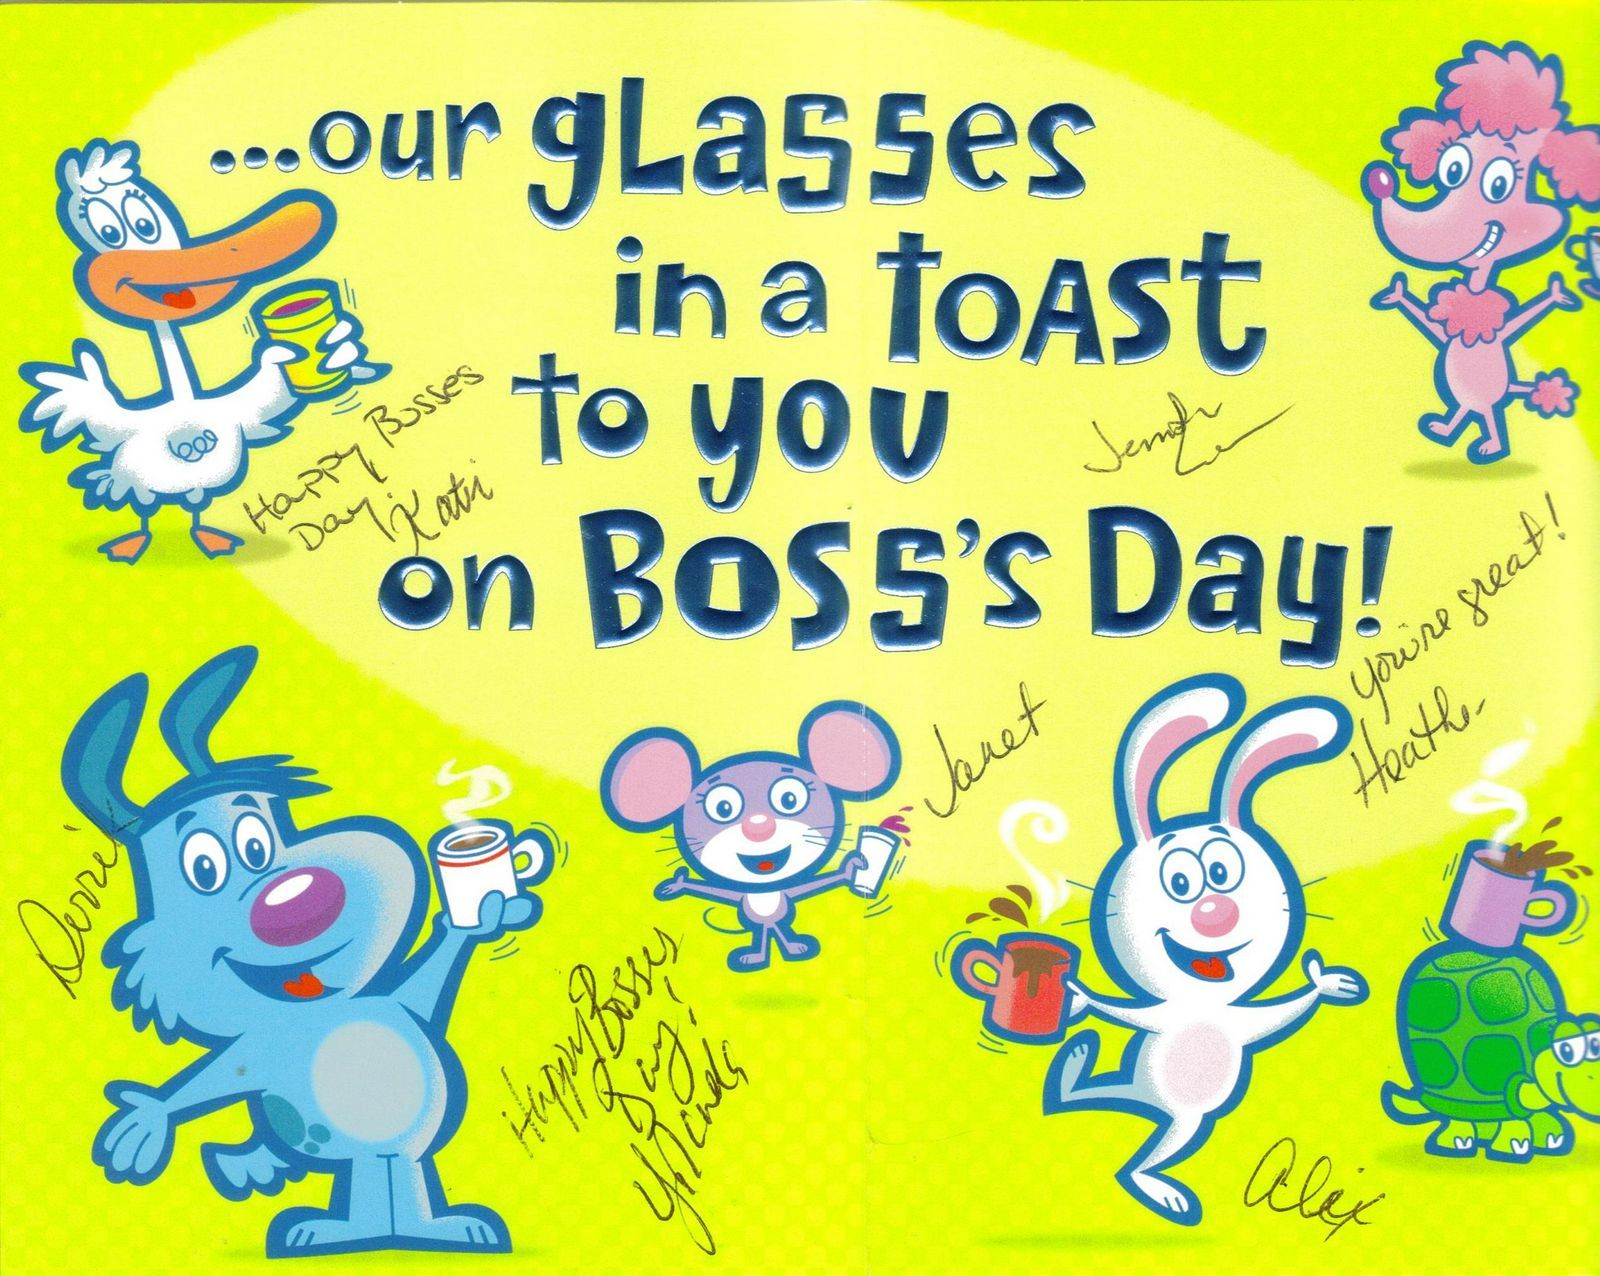 Bosses day wallpapers happy boss day pinterest happy boss bosses day wallpapers kristyandbryce Gallery